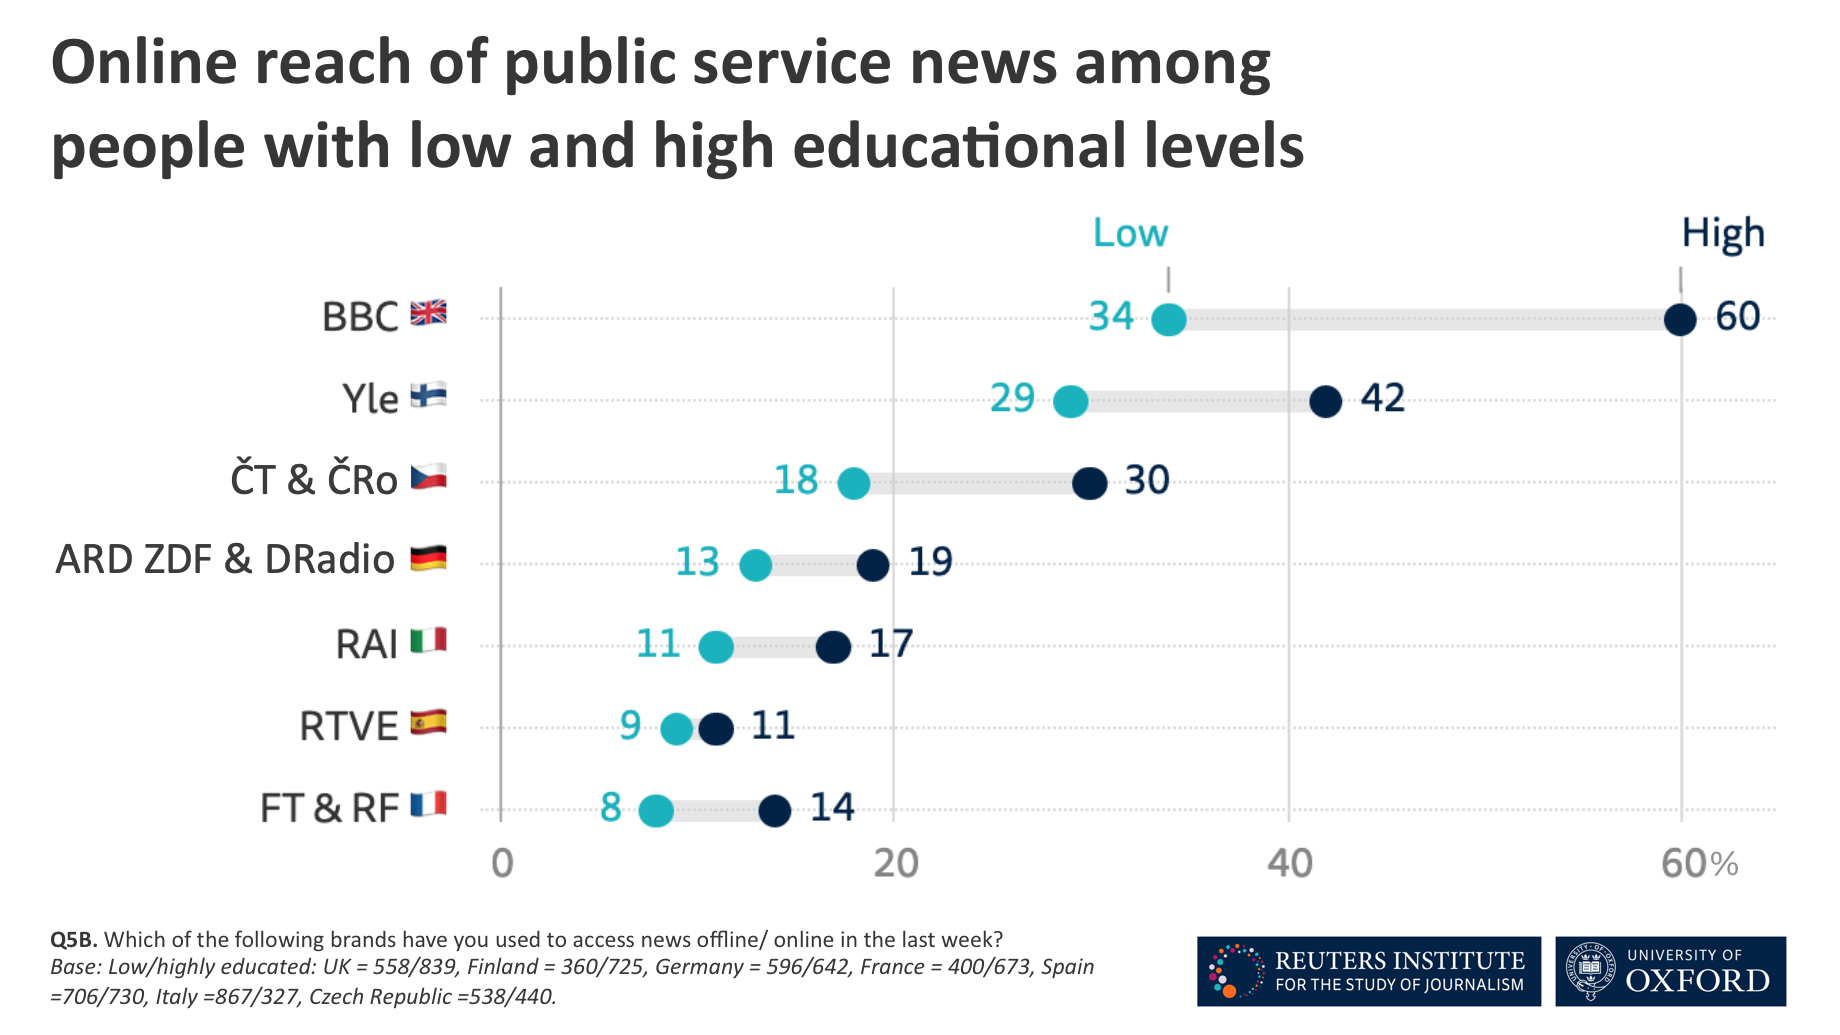 Online reach of public service news among people with high and low levels of formal education